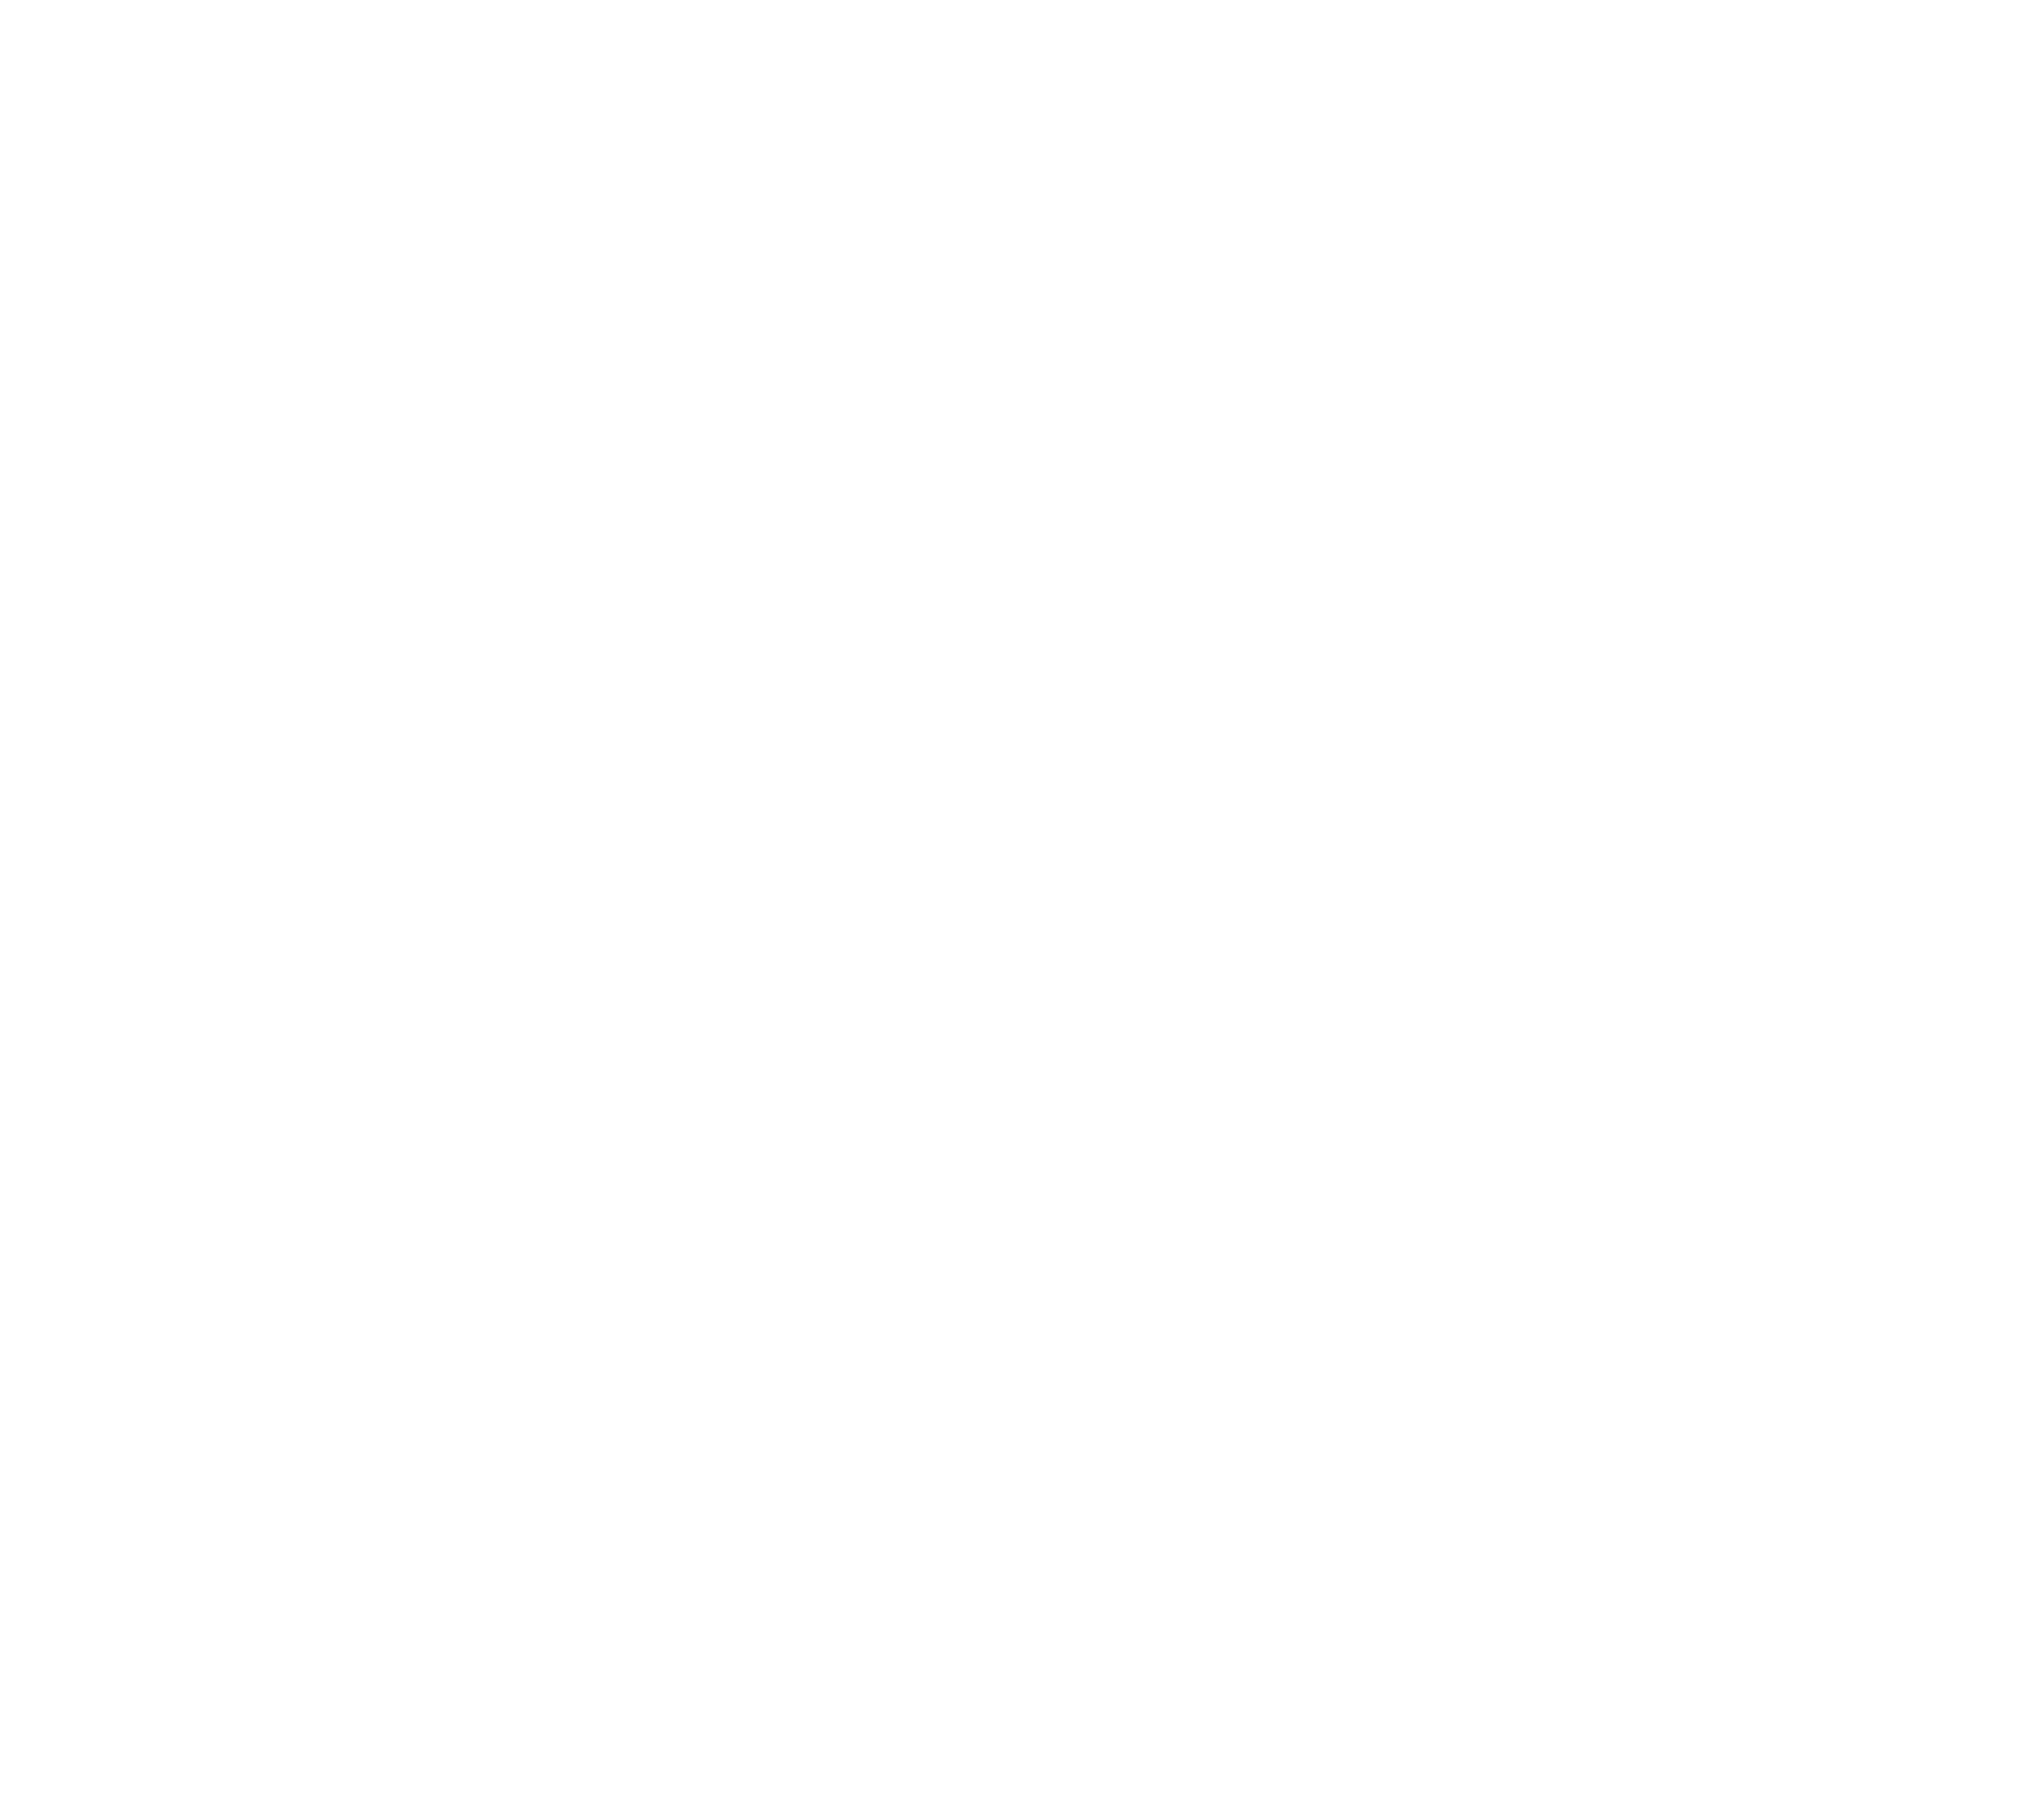 agilegreen.net